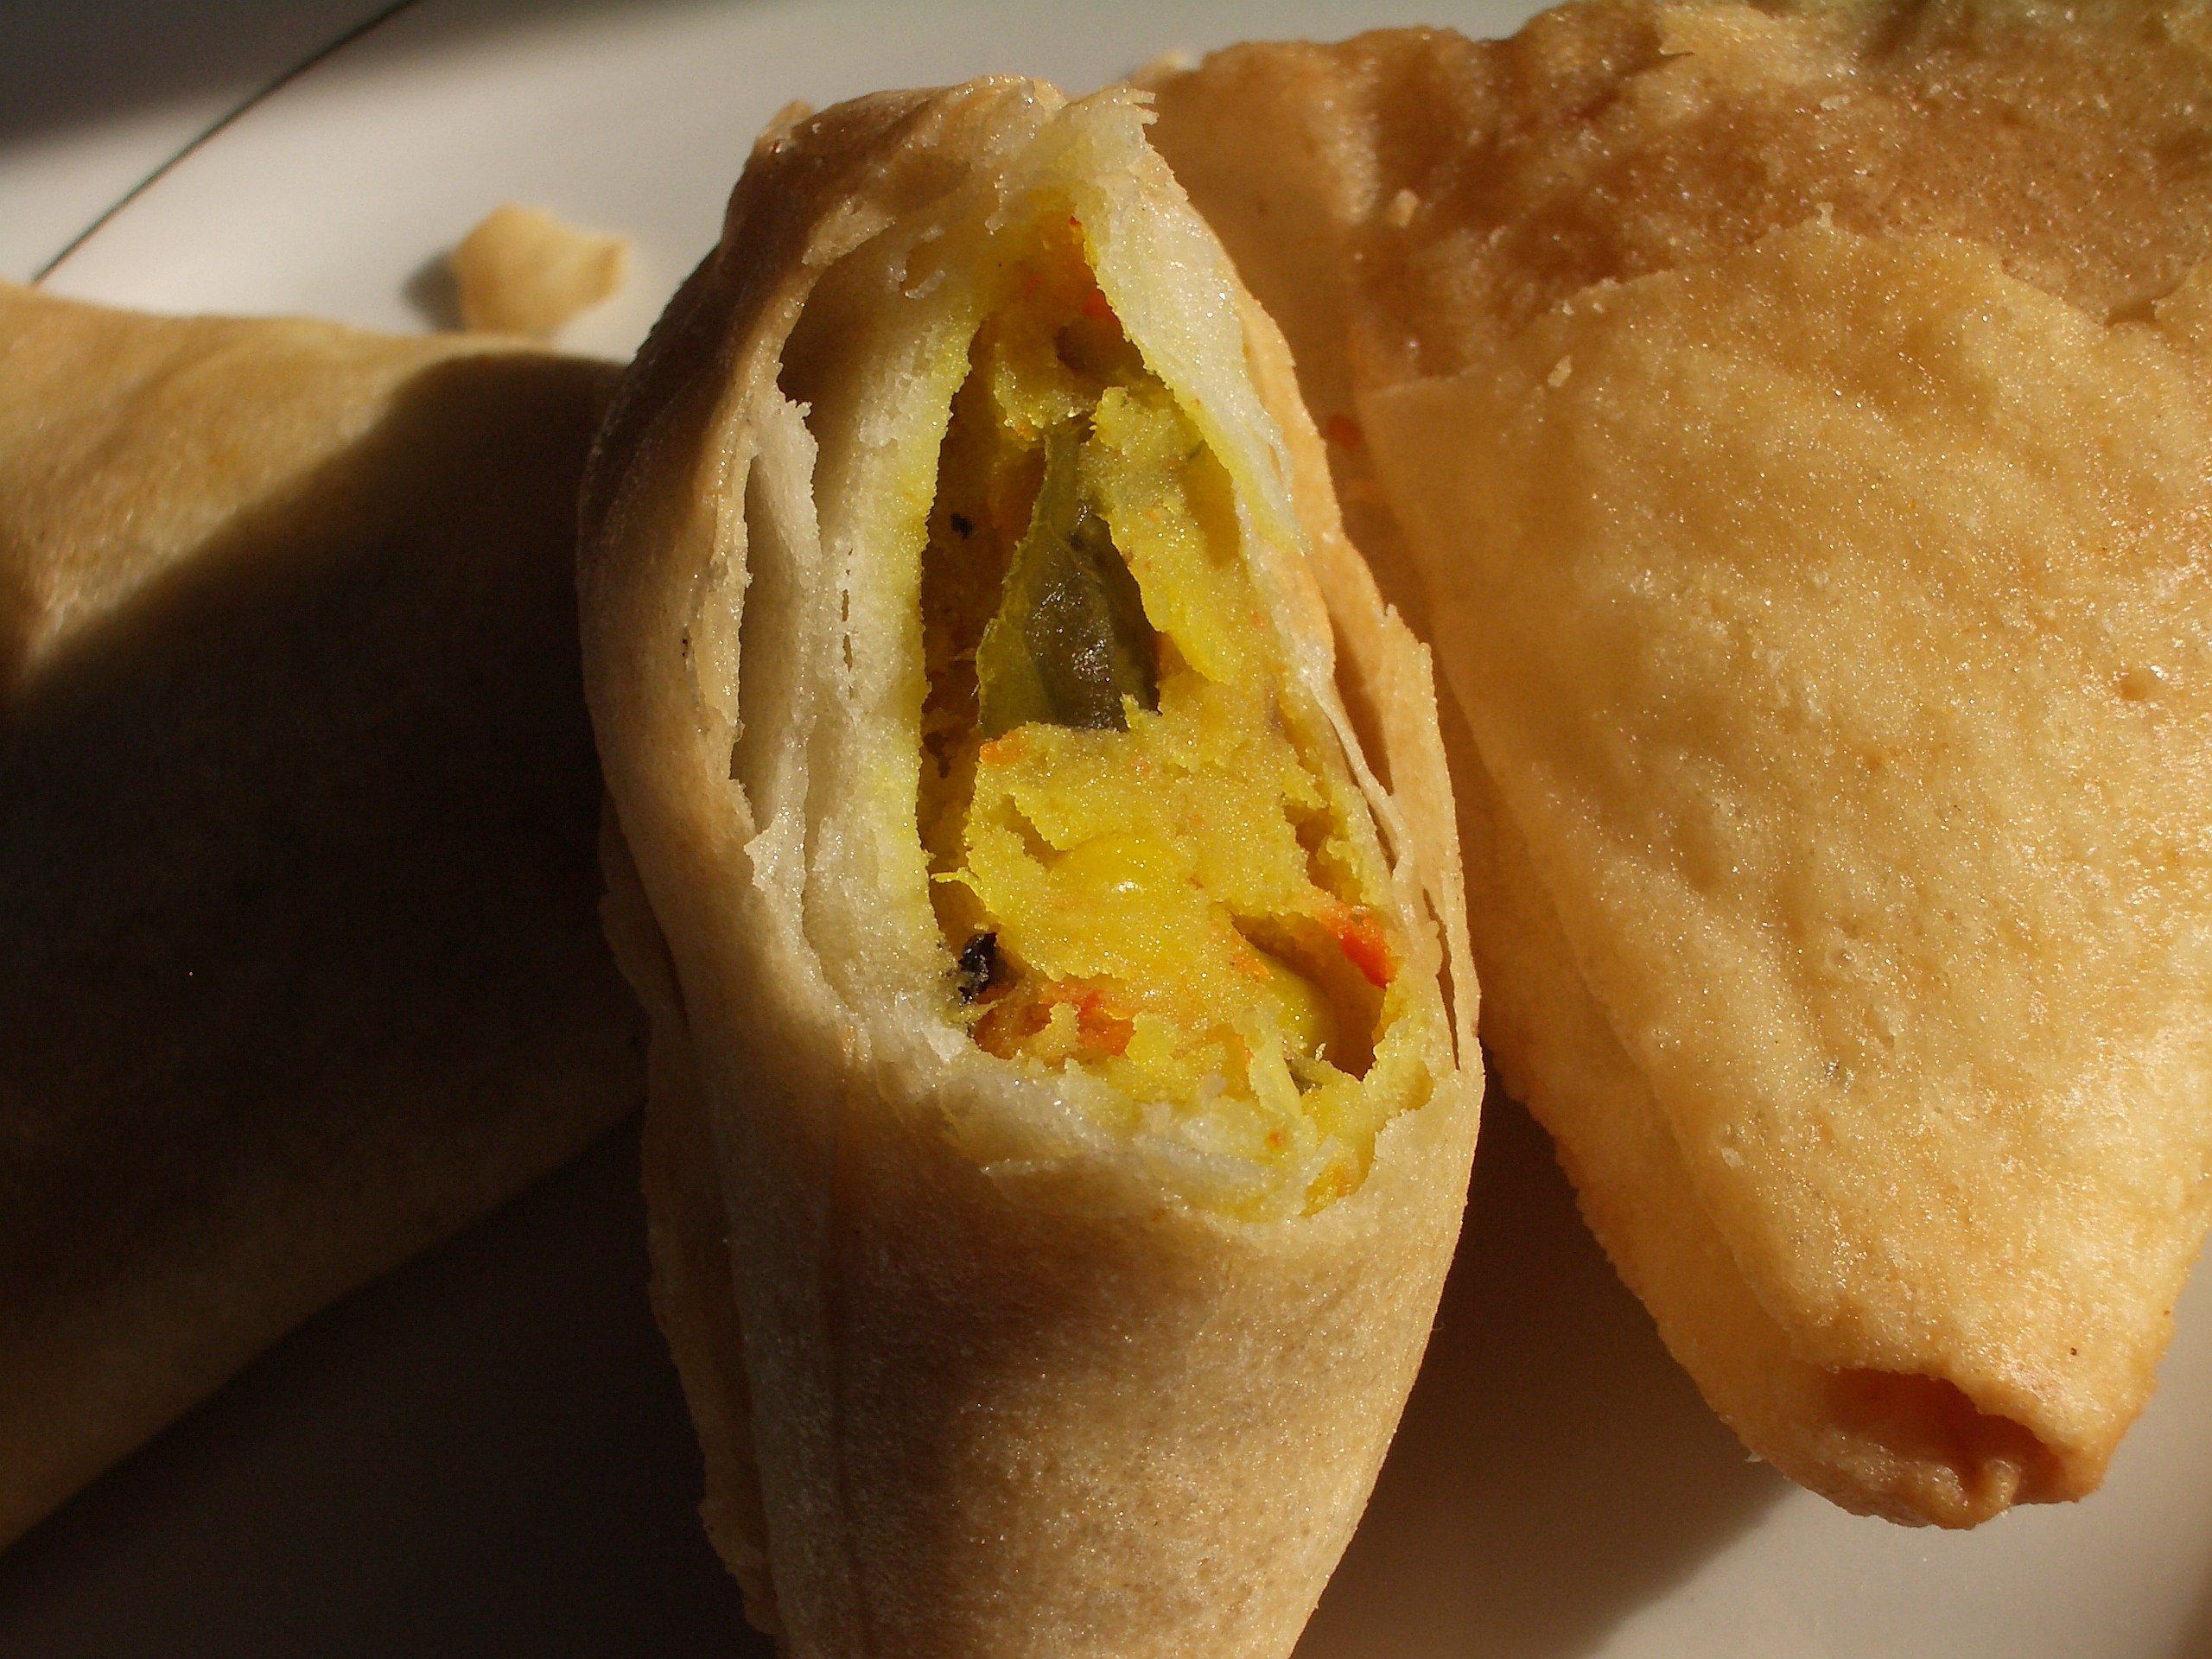 File:Samosa (partially open).jpg - Wikimedia Commons